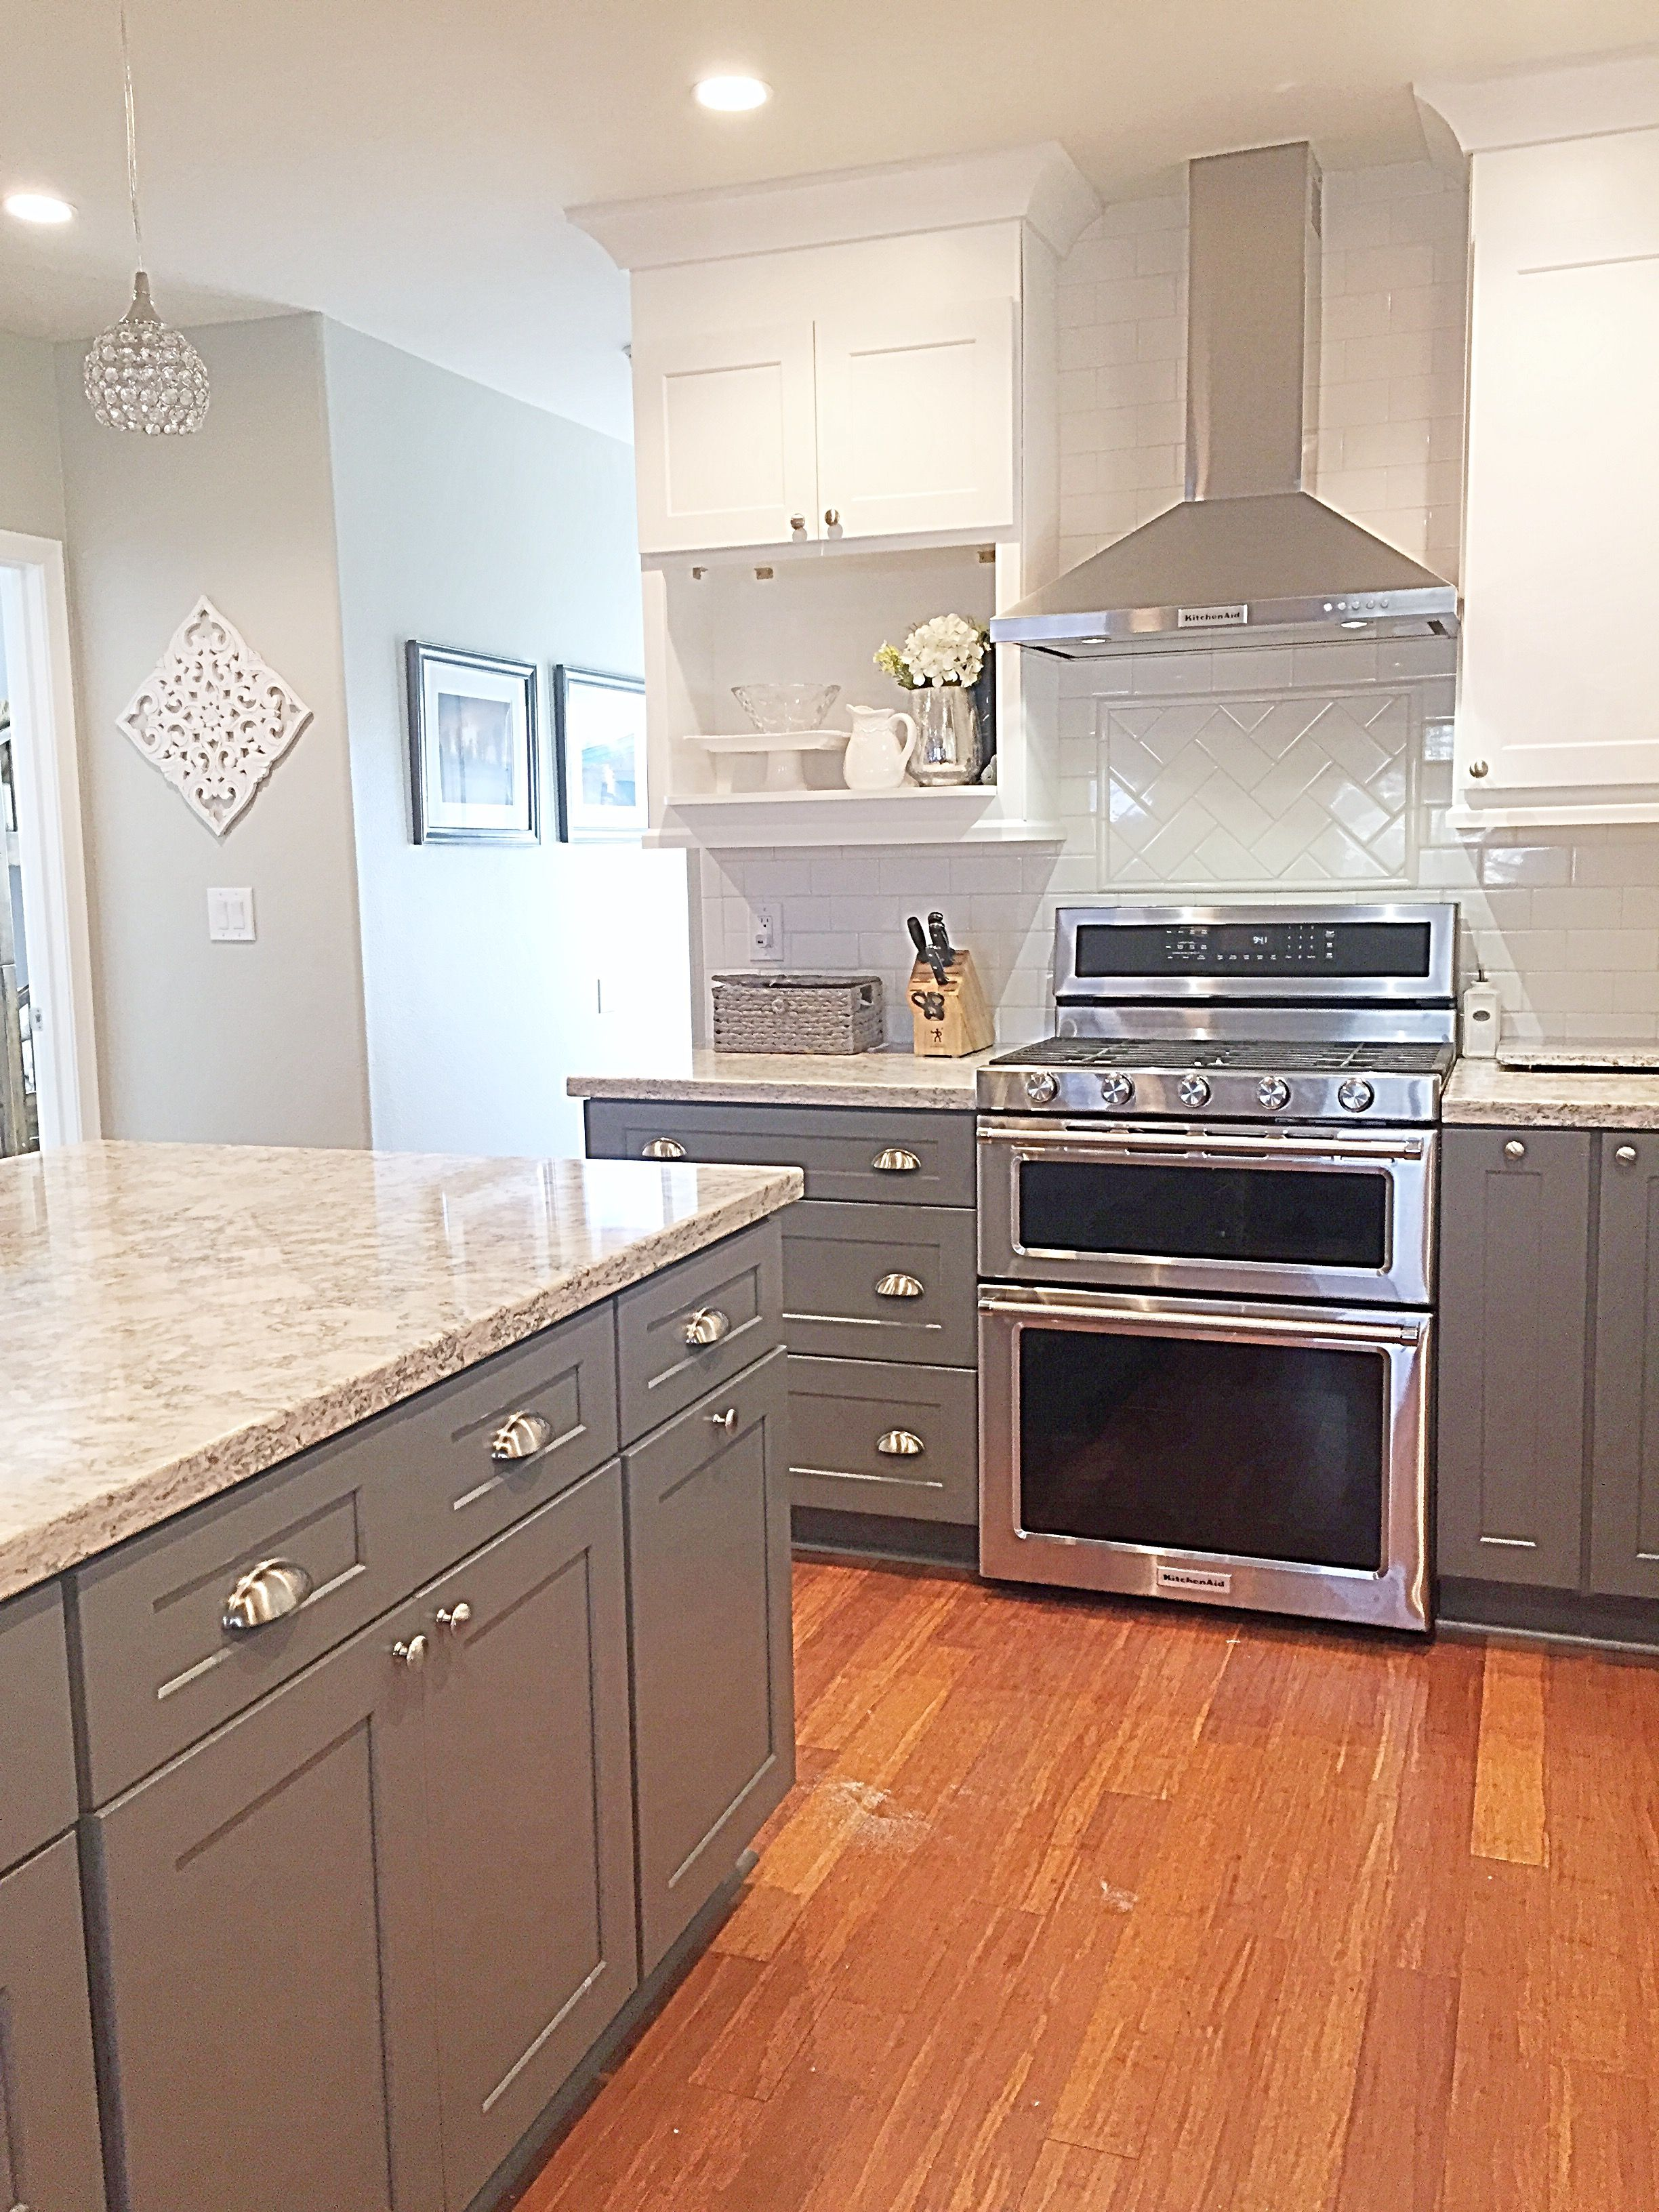 Black Base Cabinets White Upper Cabinets Cambria Quartz Berwyn Two Tone Kitchen Gray And White